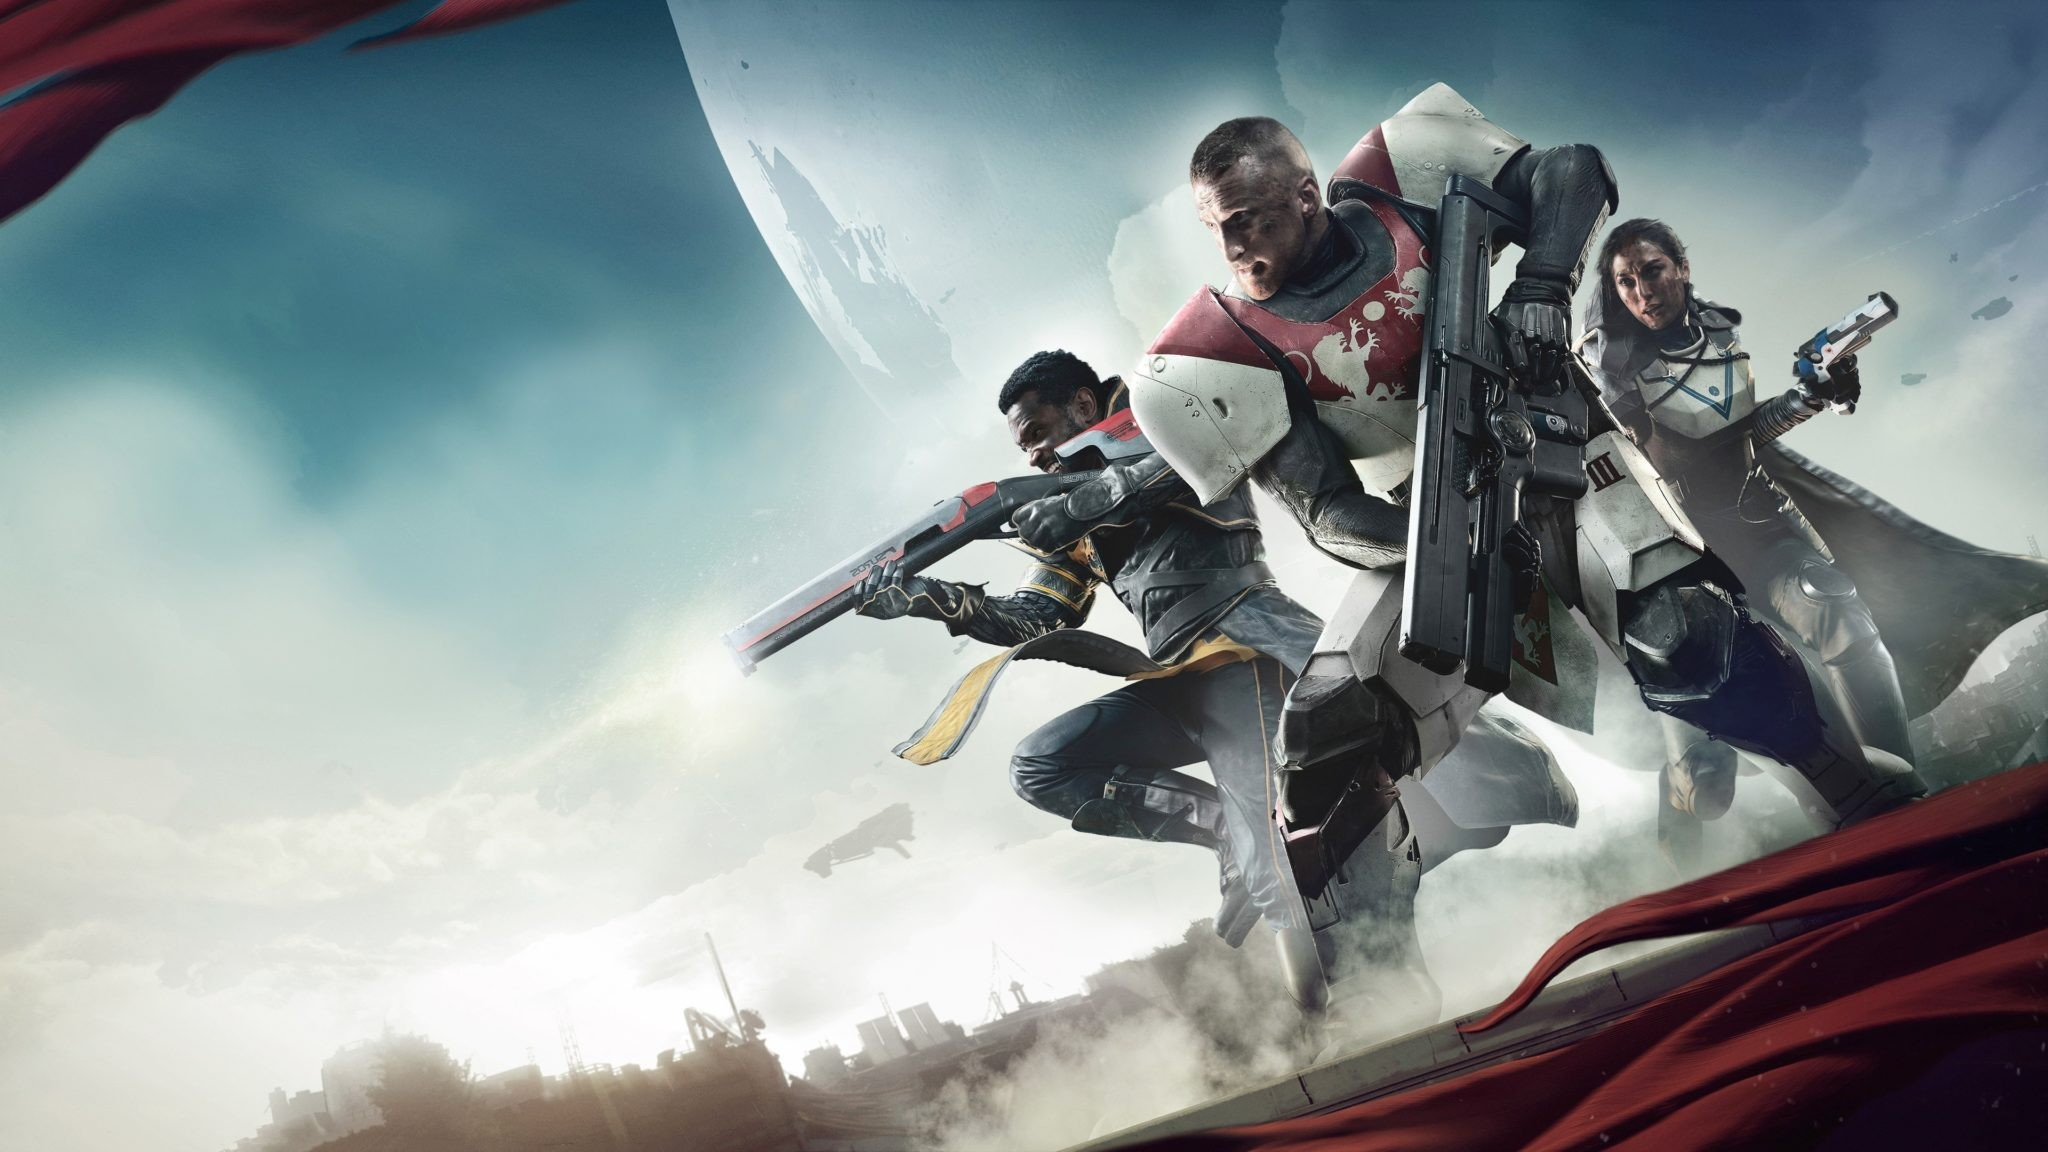 Download Destiny 2 2017, Game, 4K Wallpapers from Below Resolution.